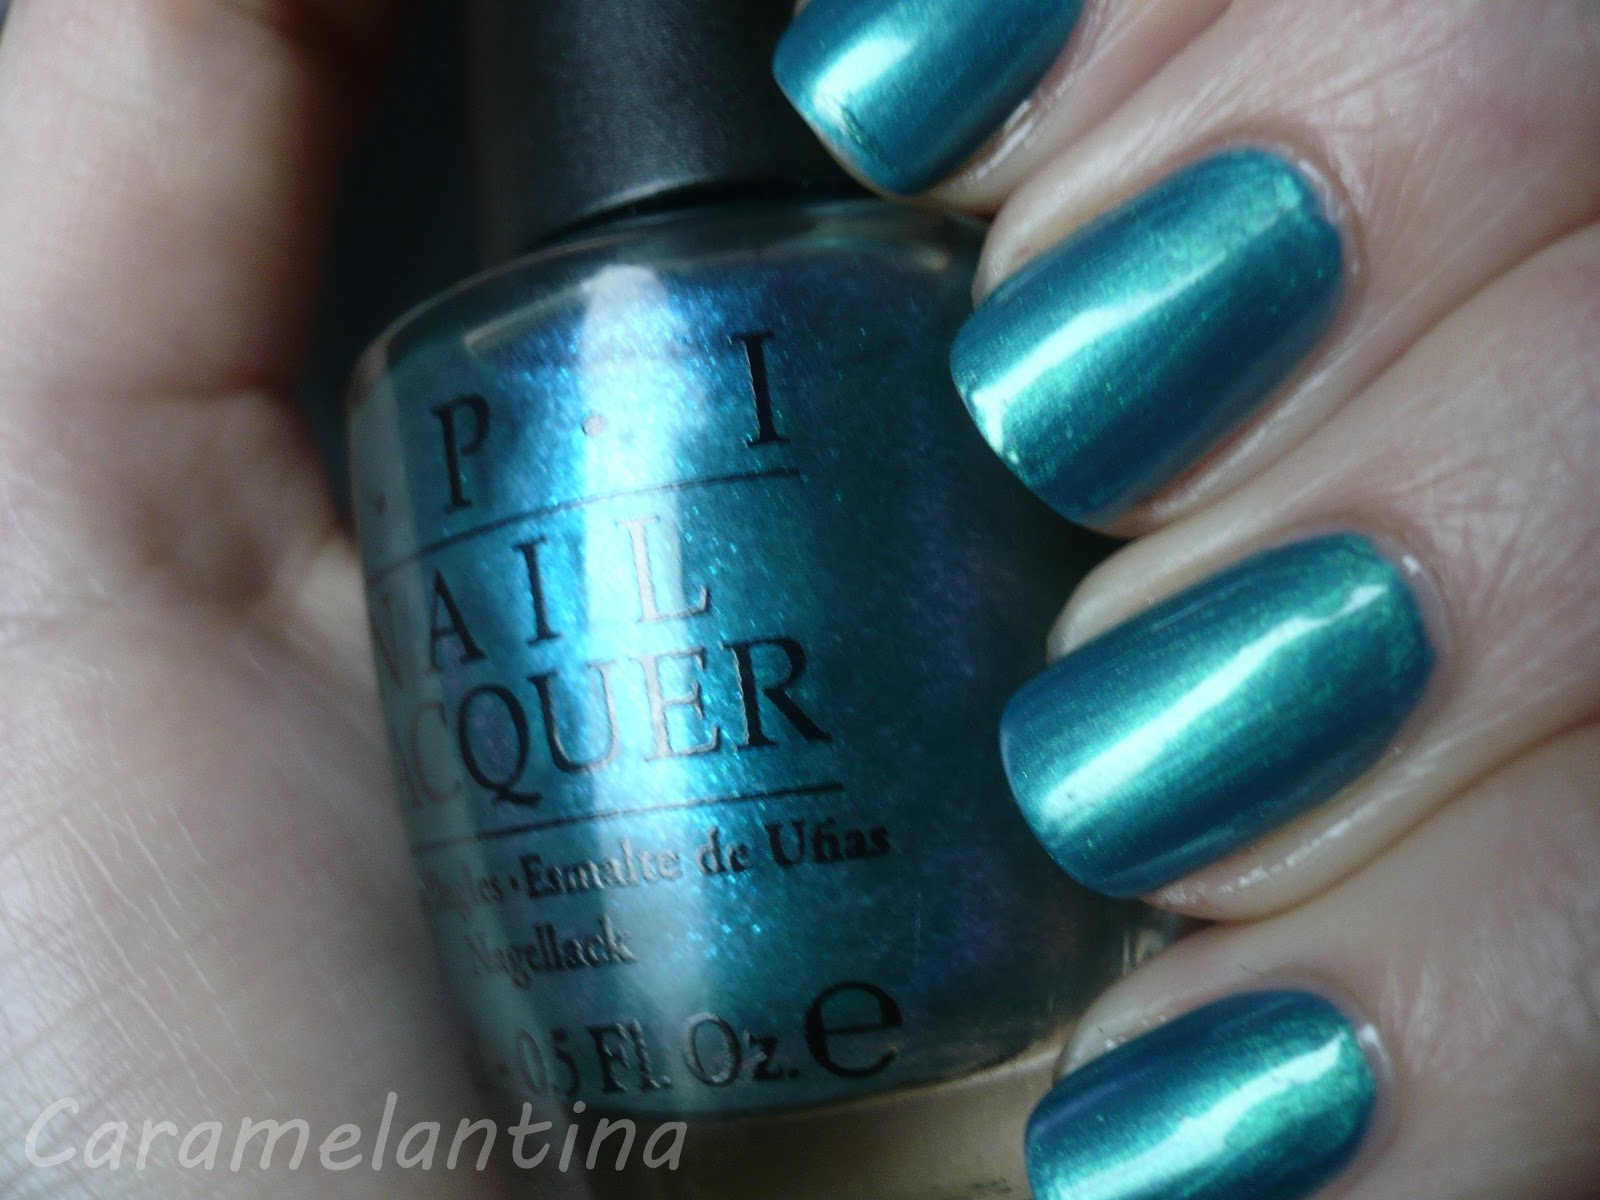 Esmaltes Mabby Jelsea, Opi Austin-tatious Turquoise, opiniones swatch review